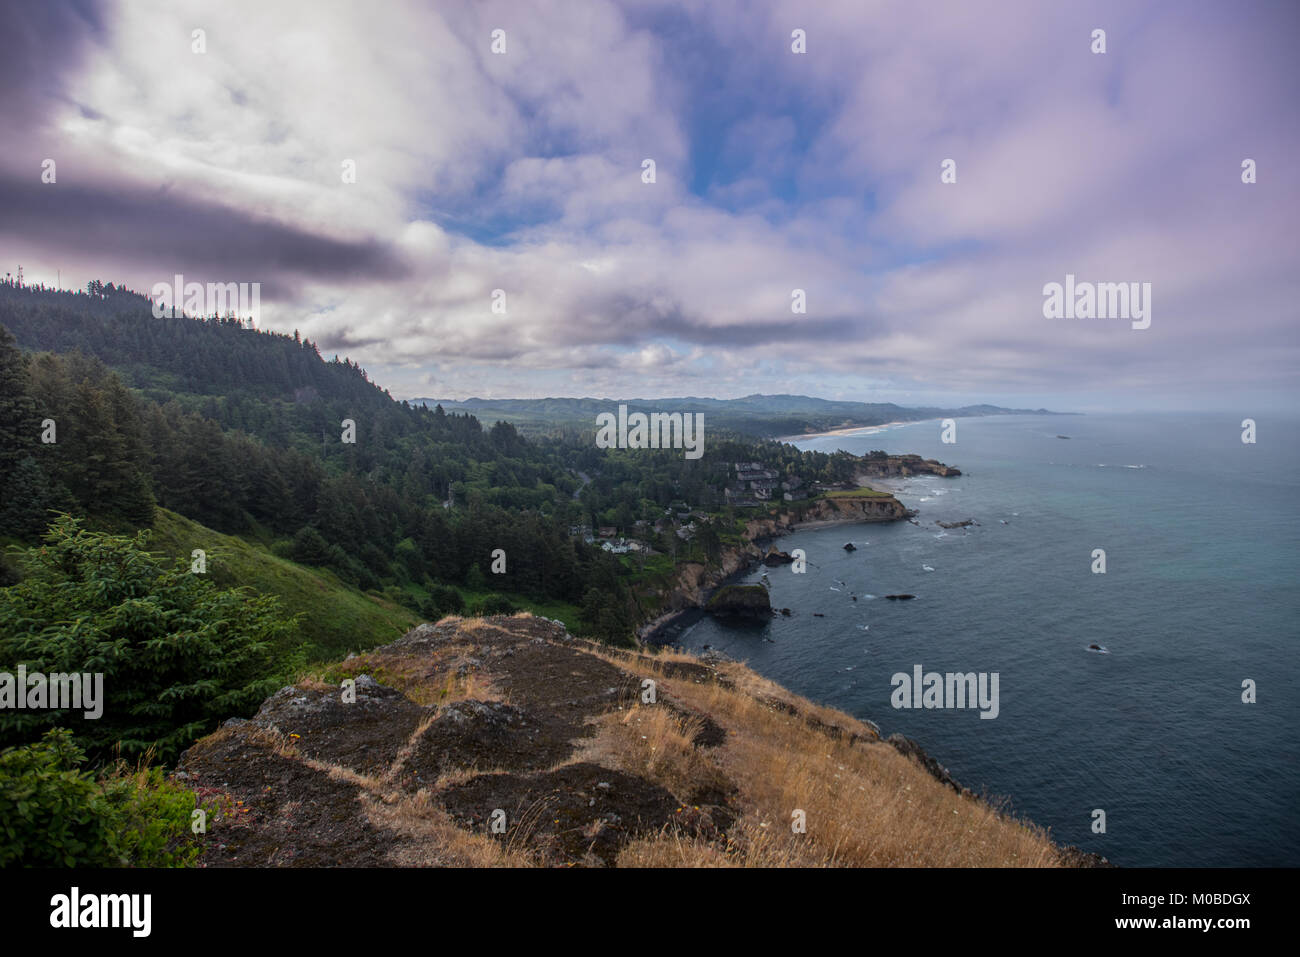 Looking Down the Oregon Coast Near Devil's Punchbowl - Stock Image